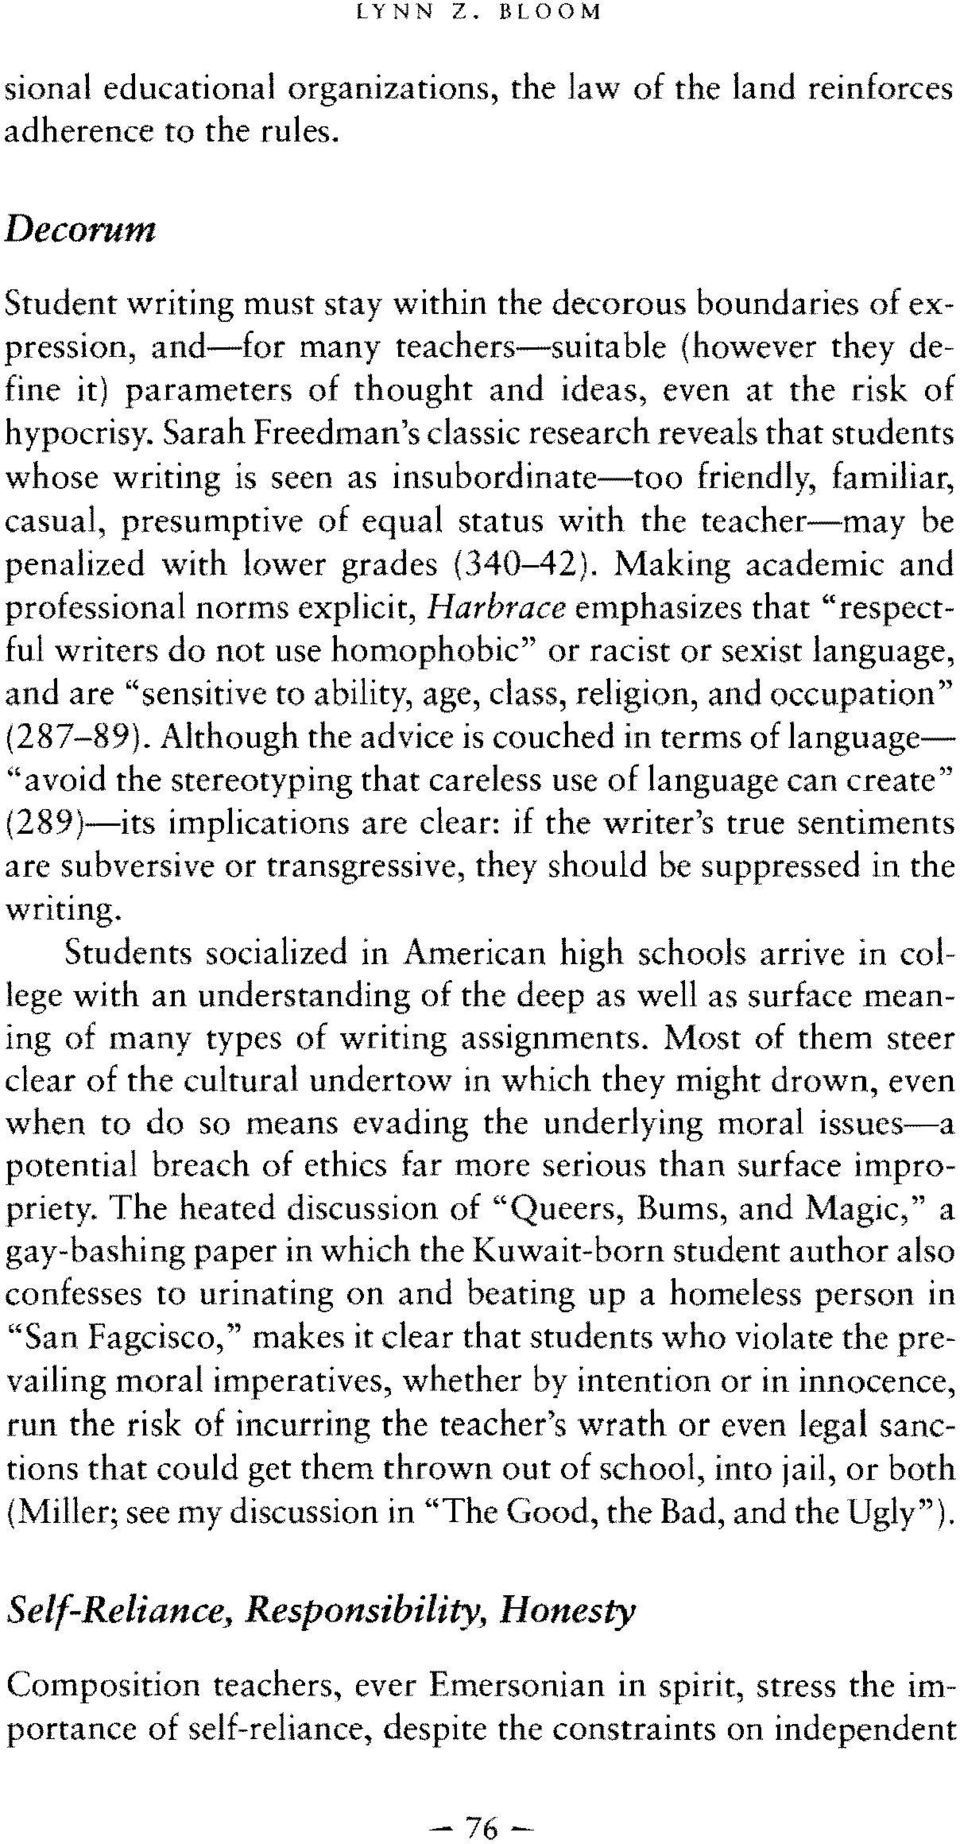 Sarah Freedman's classic research reveals that students whose writing is seen as insubordinate-too friendly, familiar, casual, presumptive of equal status with the teacher-may be penalized with lower